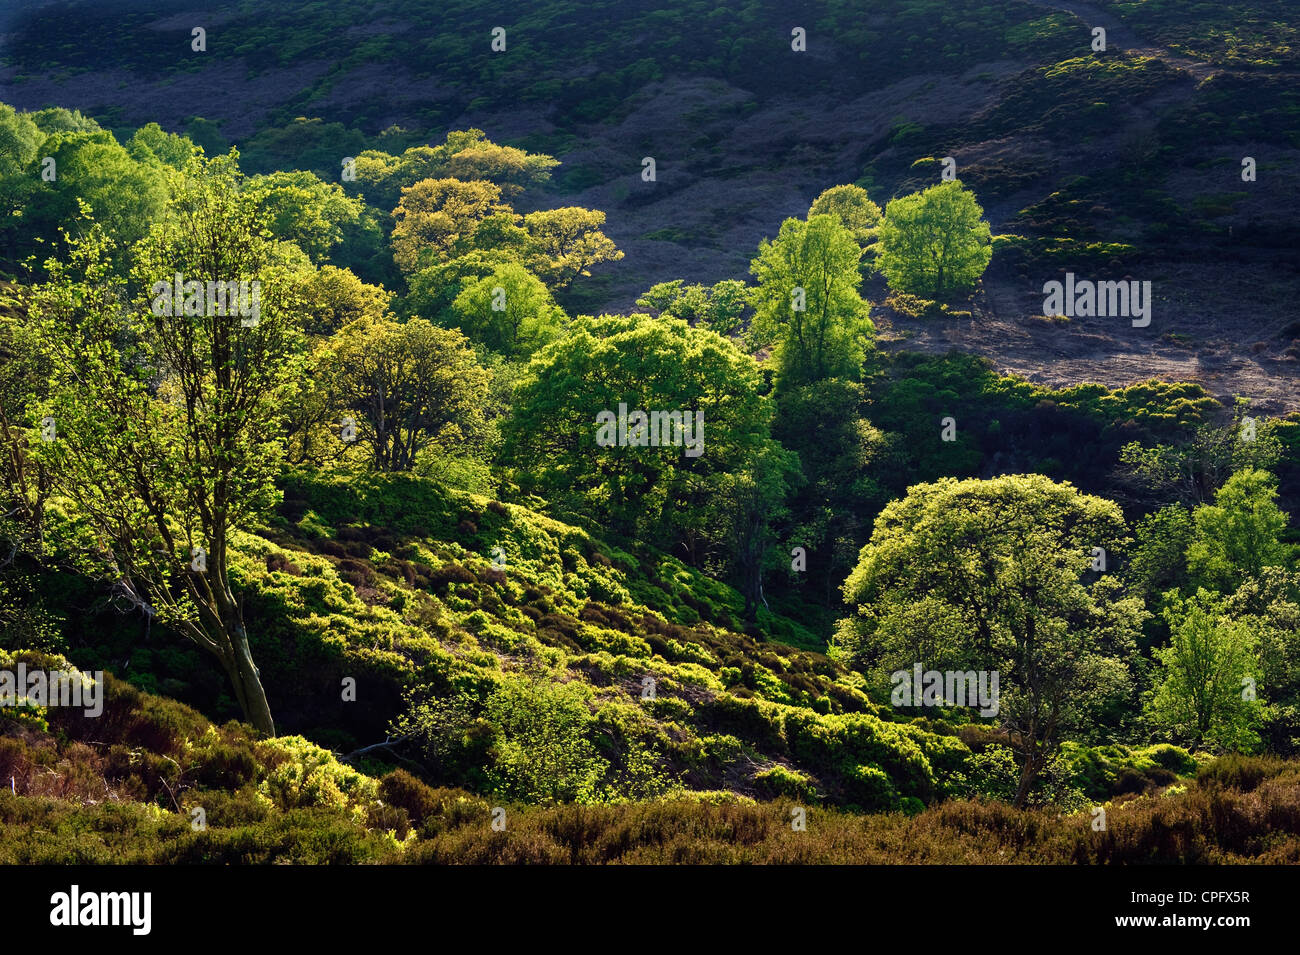 Looking down at Black Clough in the Forest of Bowland Lancashire England in springtime - Stock Image